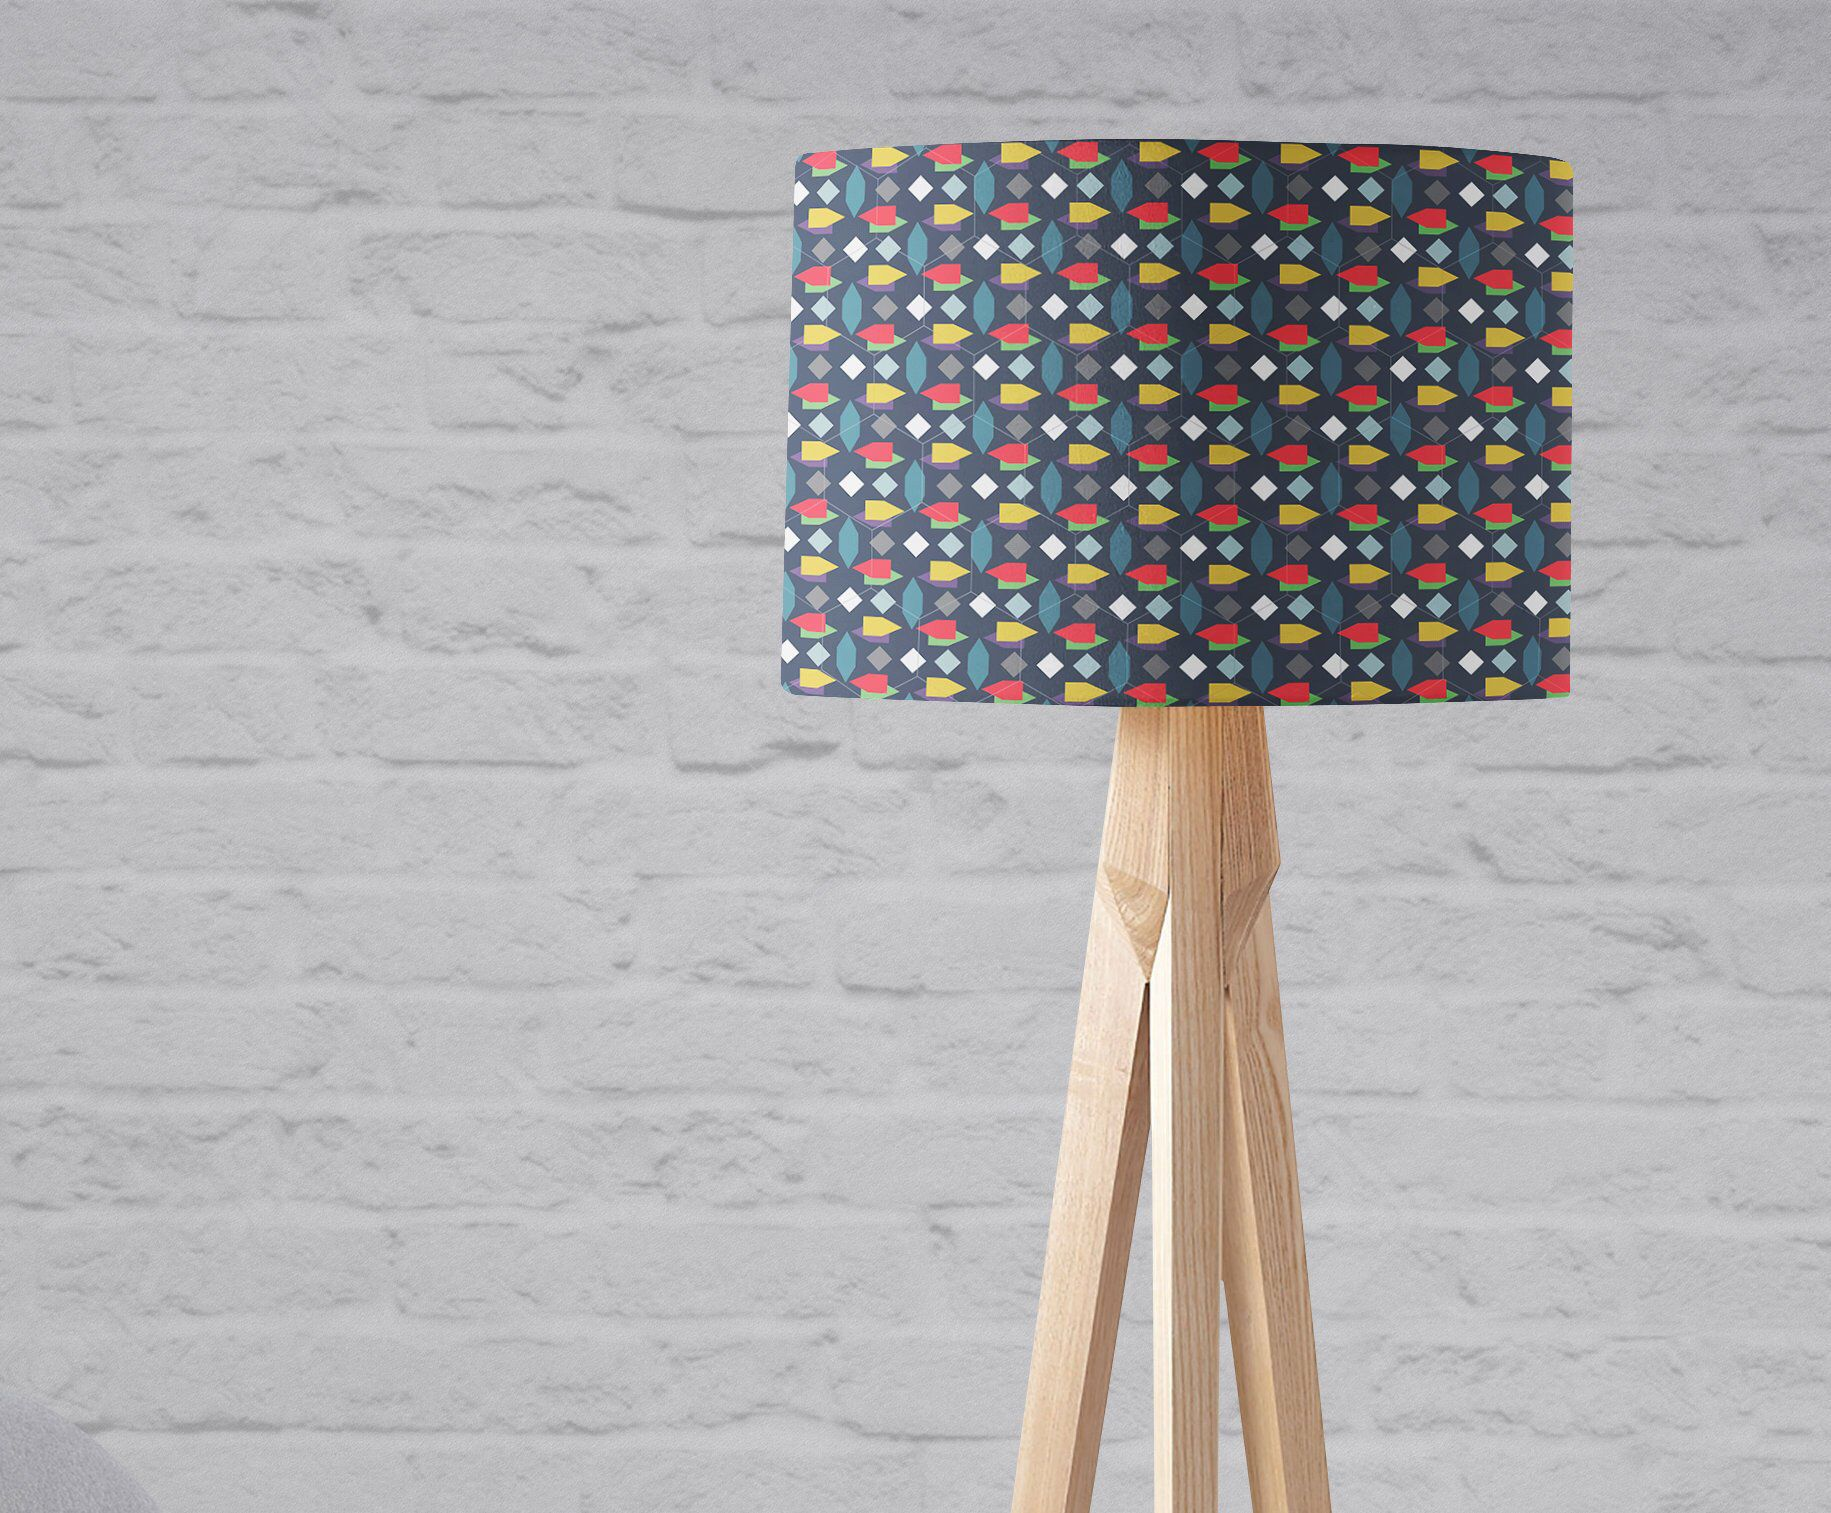 Dark Blue Lampshade Blue Living Room Abstract Lampshade Geometric Light Shade Modern Lampshade Lampshades For Floor Lamps Lampshade Blue Lamp Shade Modern Lamp Shades Small Bedside Lamps